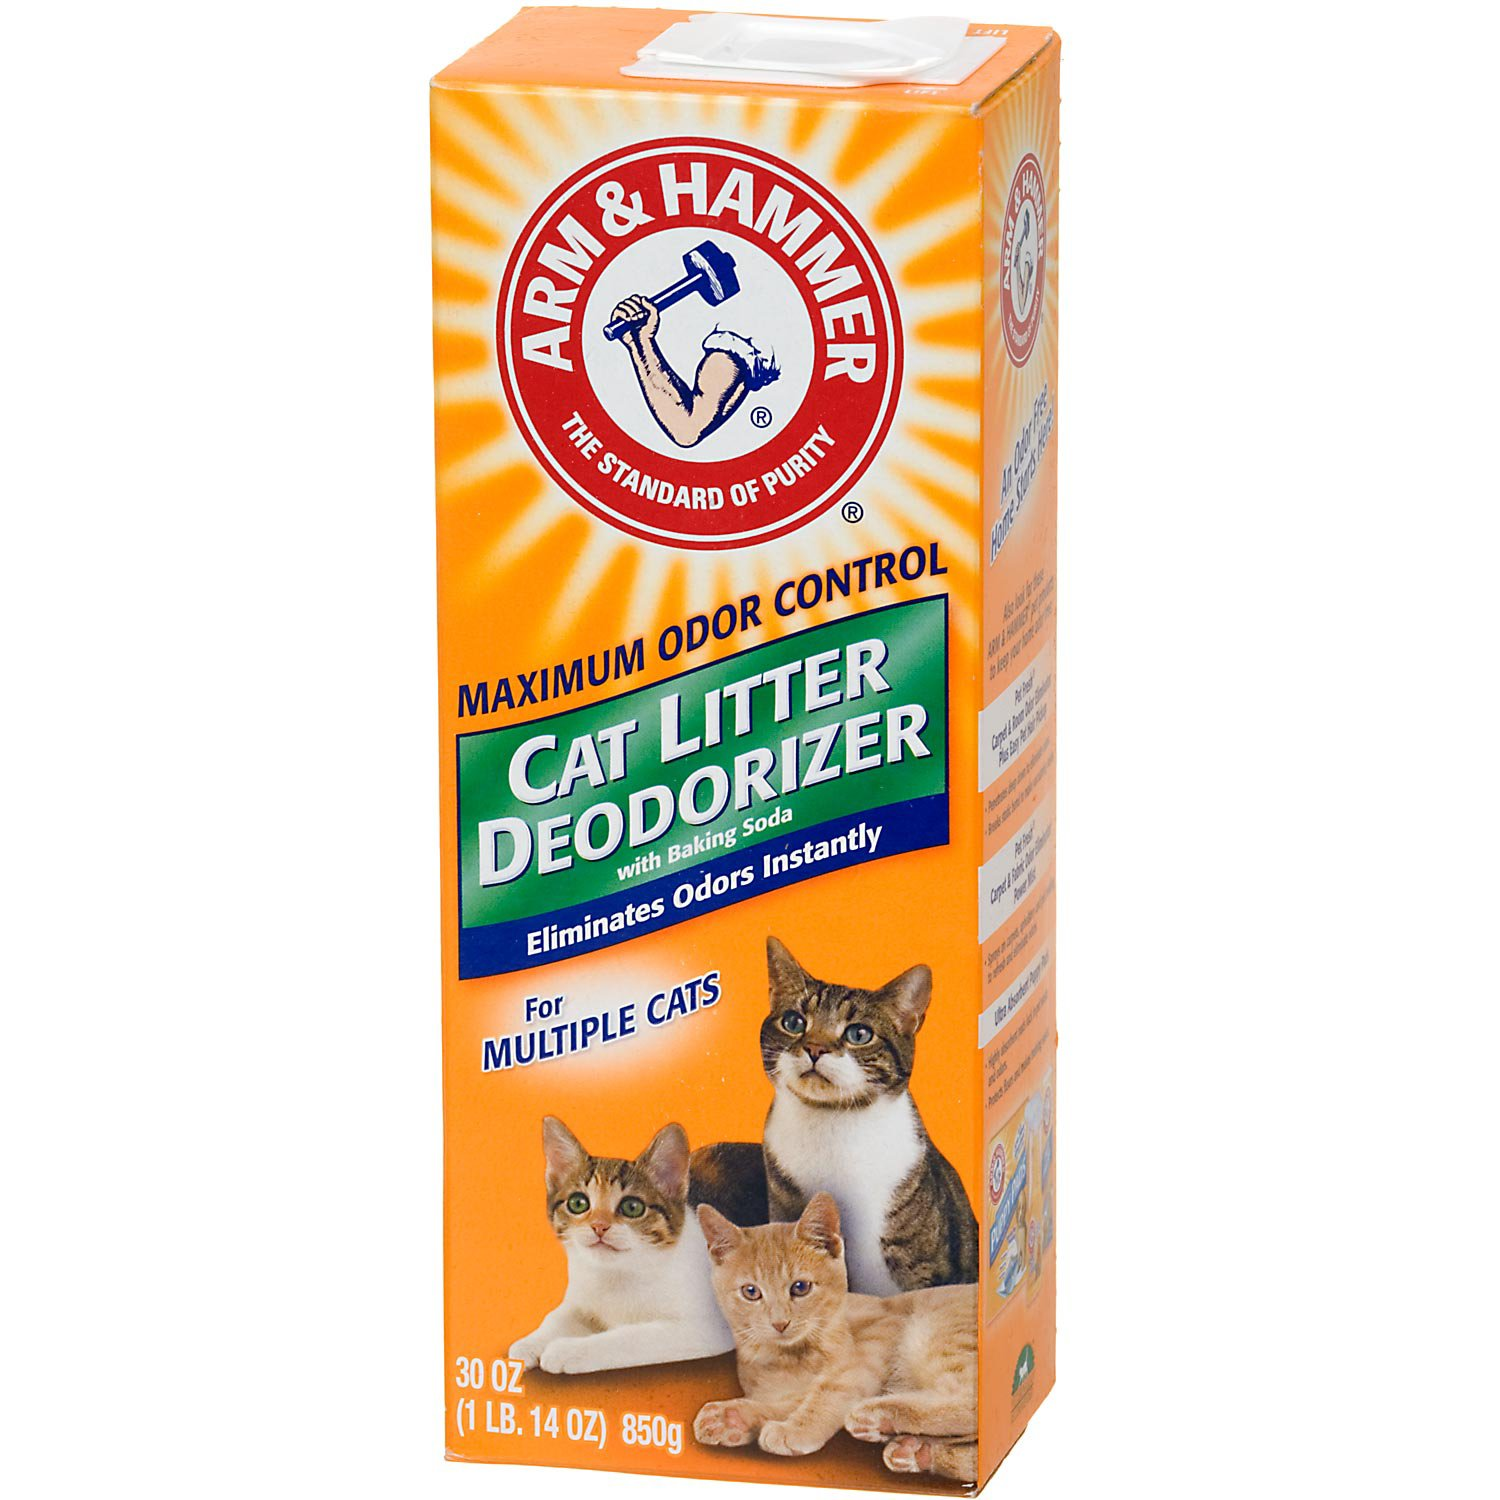 Arm Amp Hammer Multiple Cat Litter Deodorizer With Baking